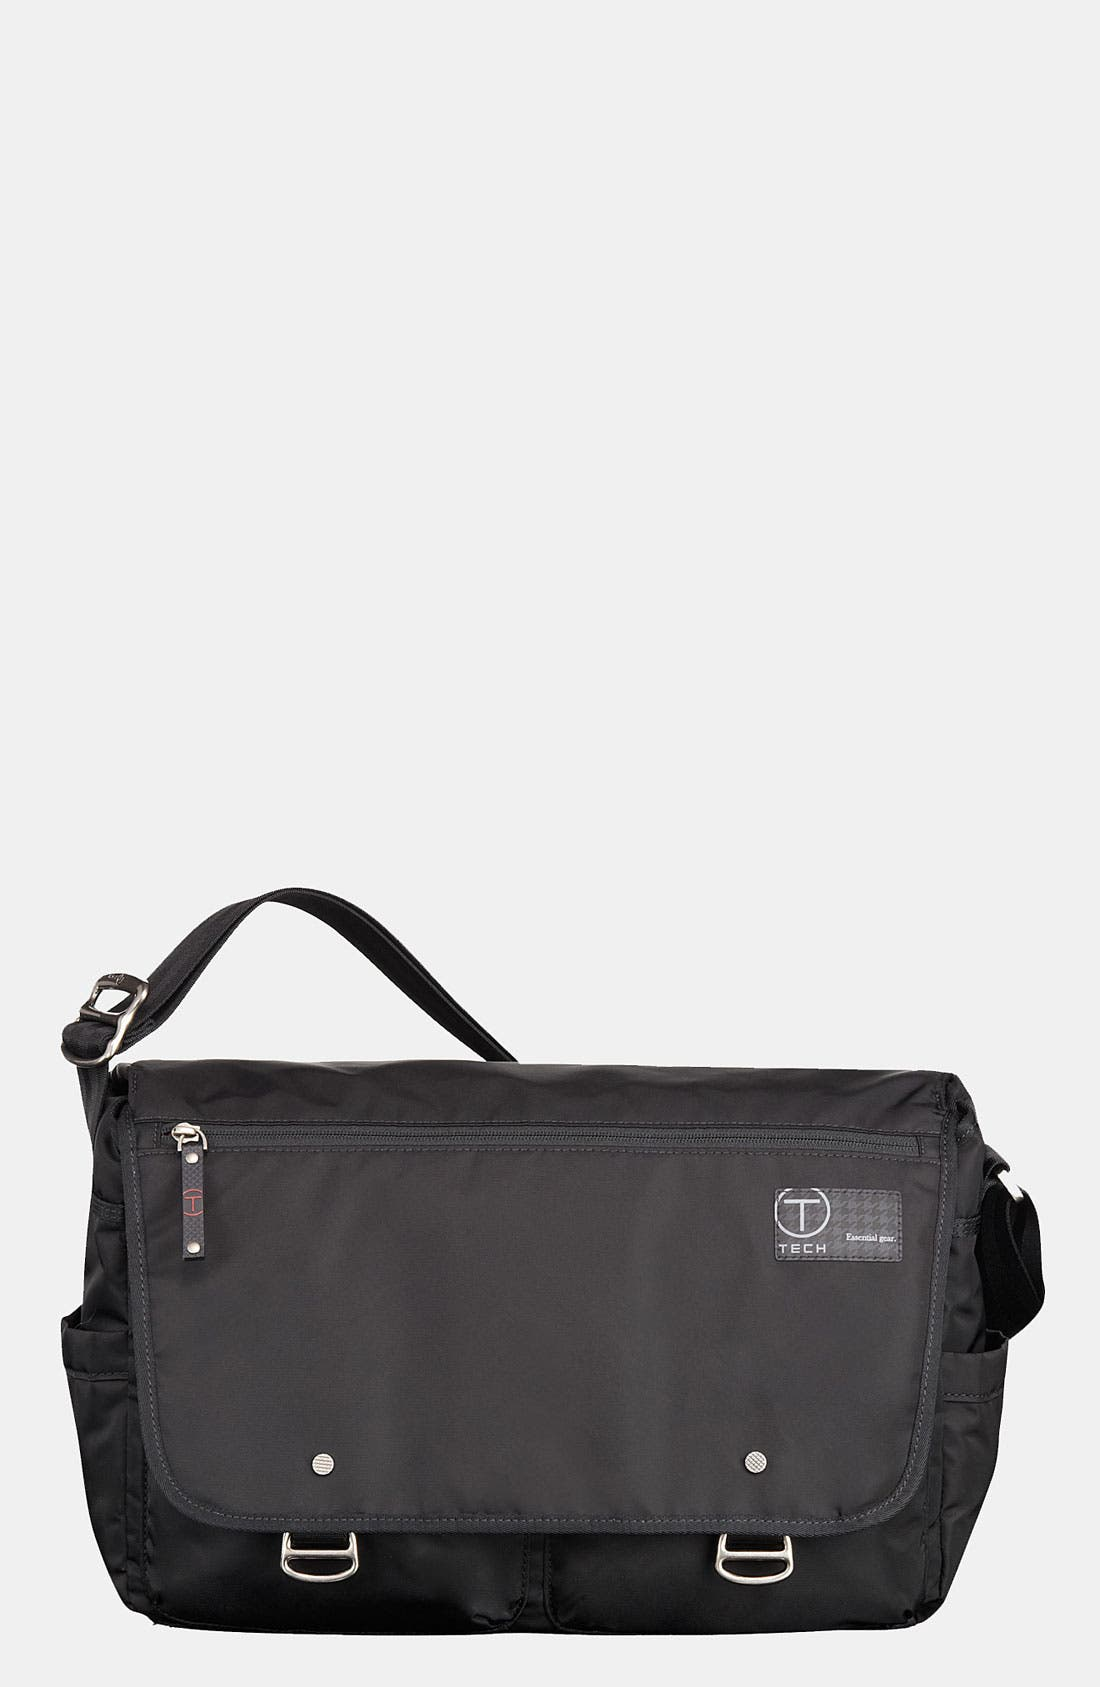 Main Image - Tumi 'T-Tech Icon - Hans' Laptop Messenger Bag